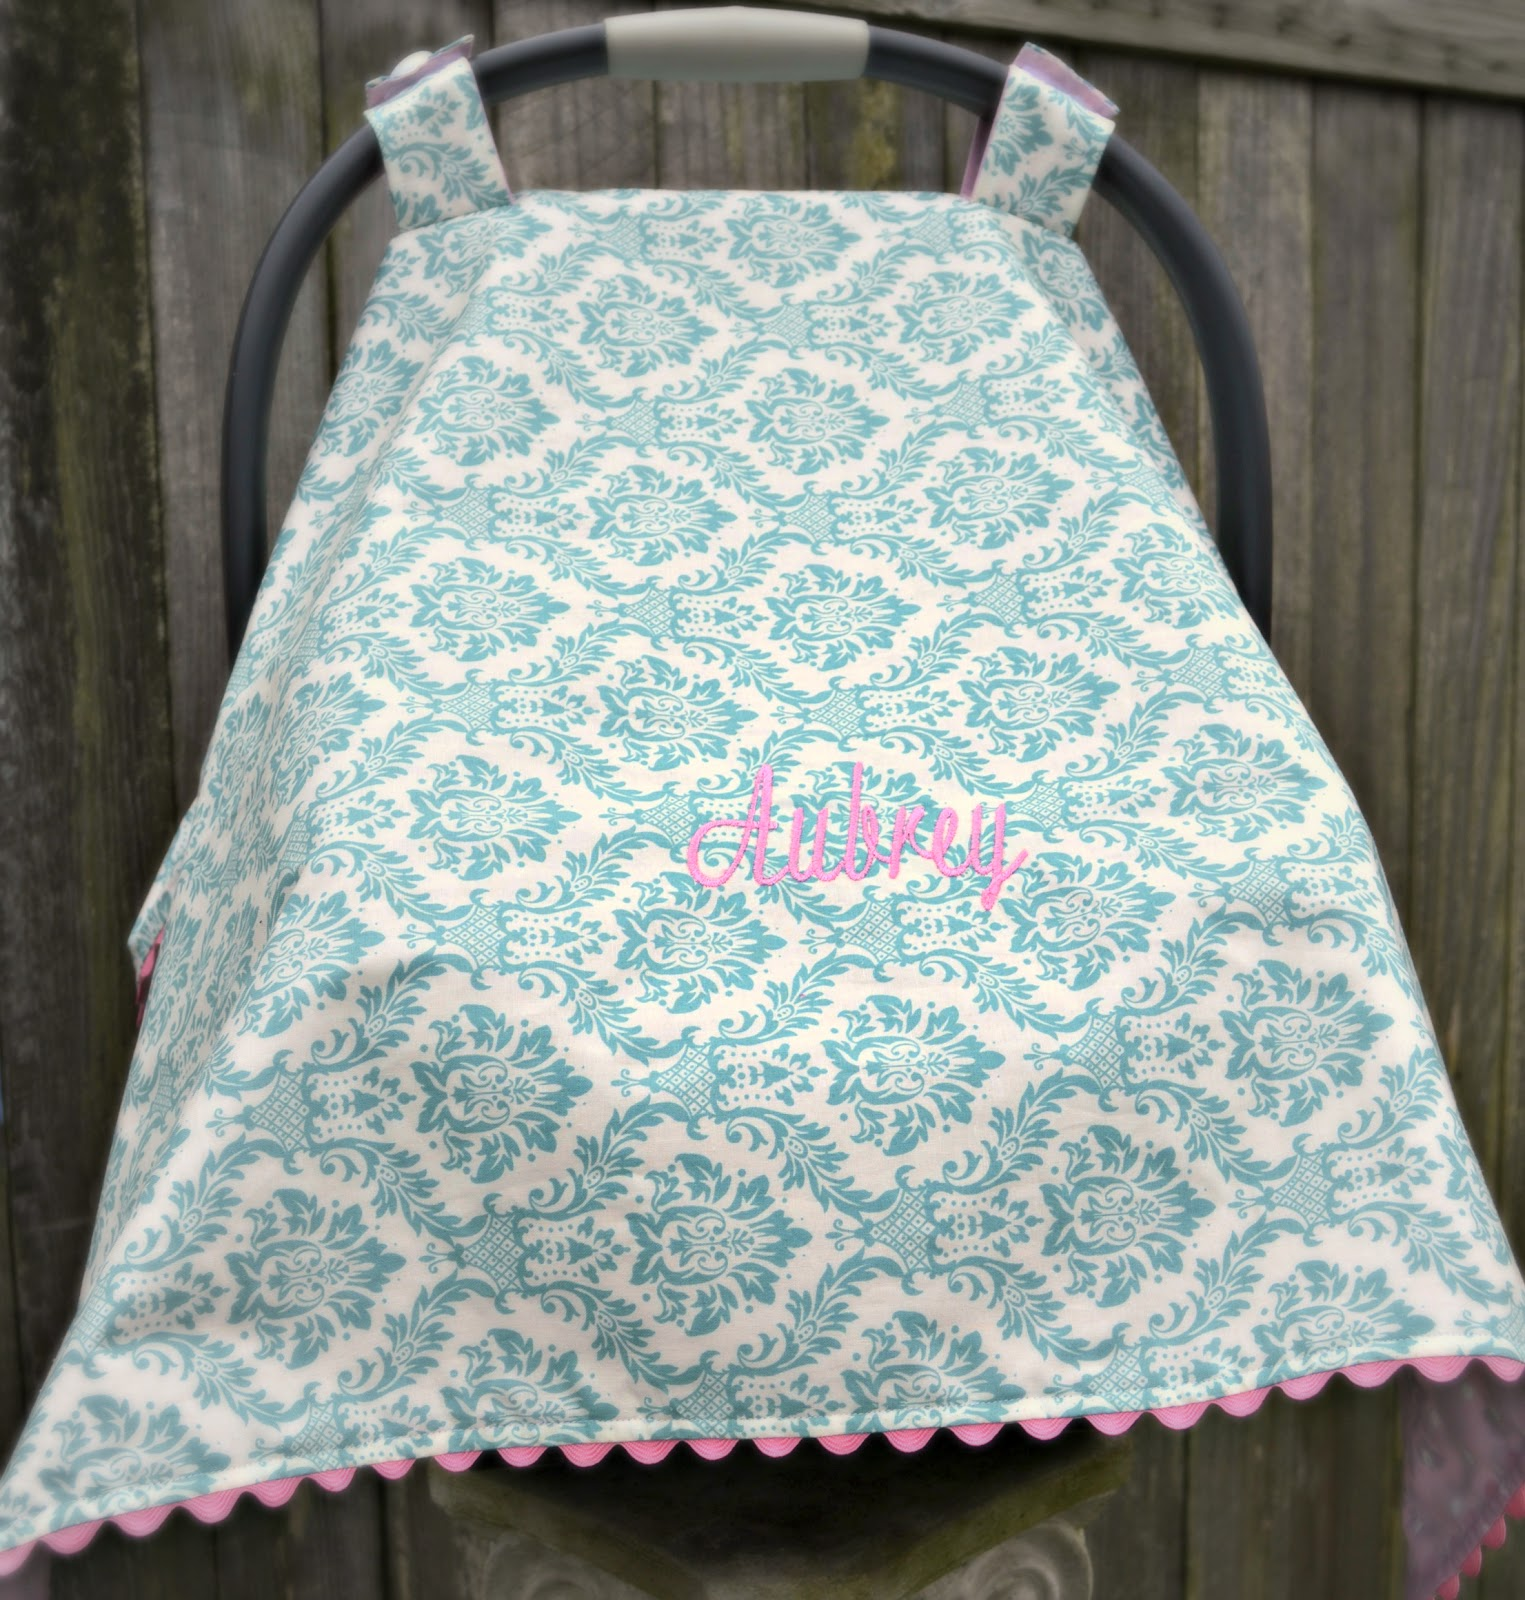 Carseat Canopy Tutorial & The Domestic Doozie: Carseat Canopy Tutorial